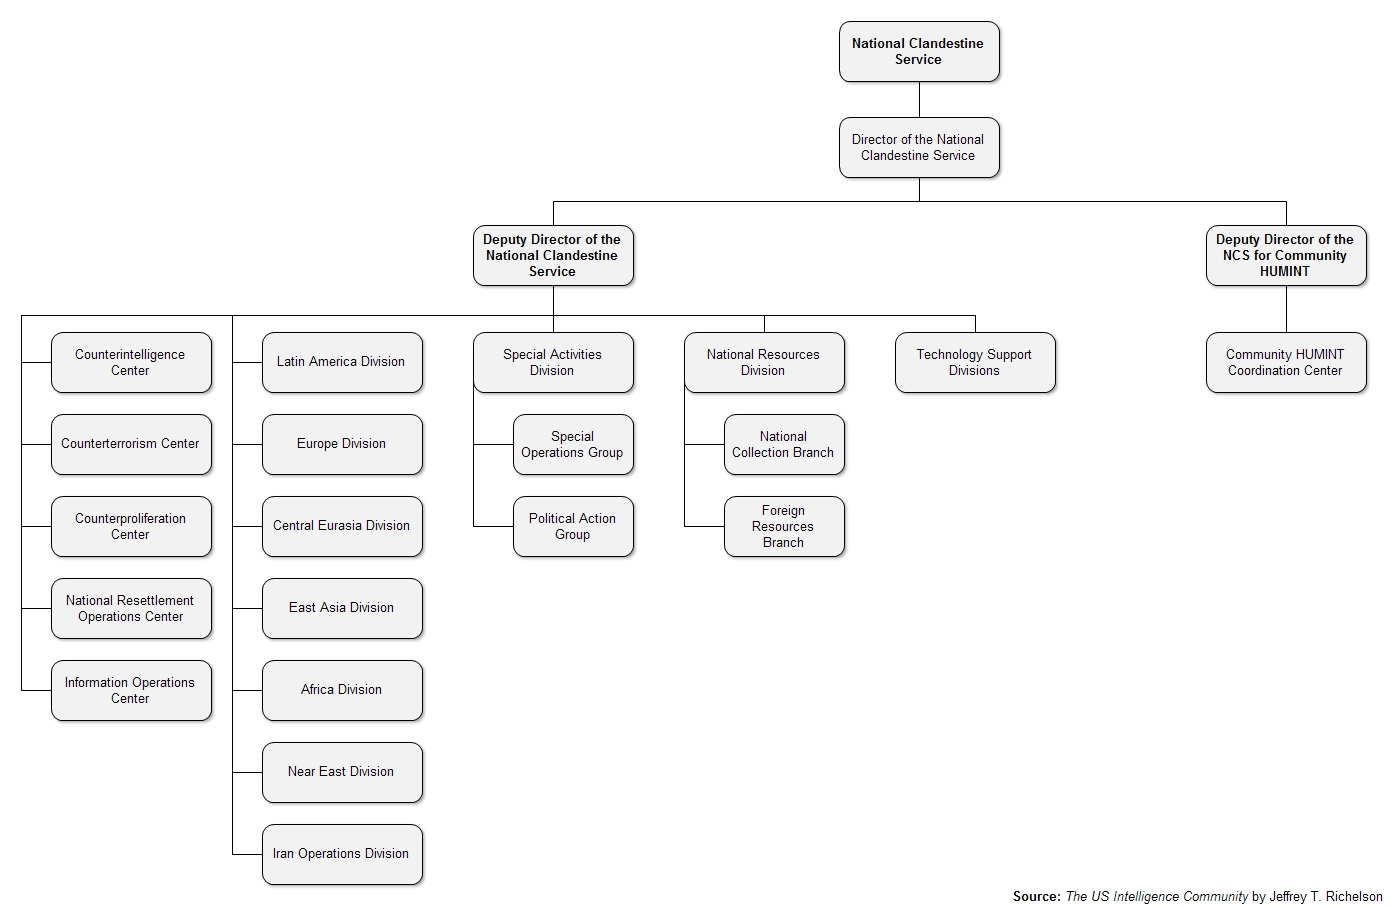 Organization Chart Excel 2013: Organizational Chart of the CIA7s National Clandestine ,Chart